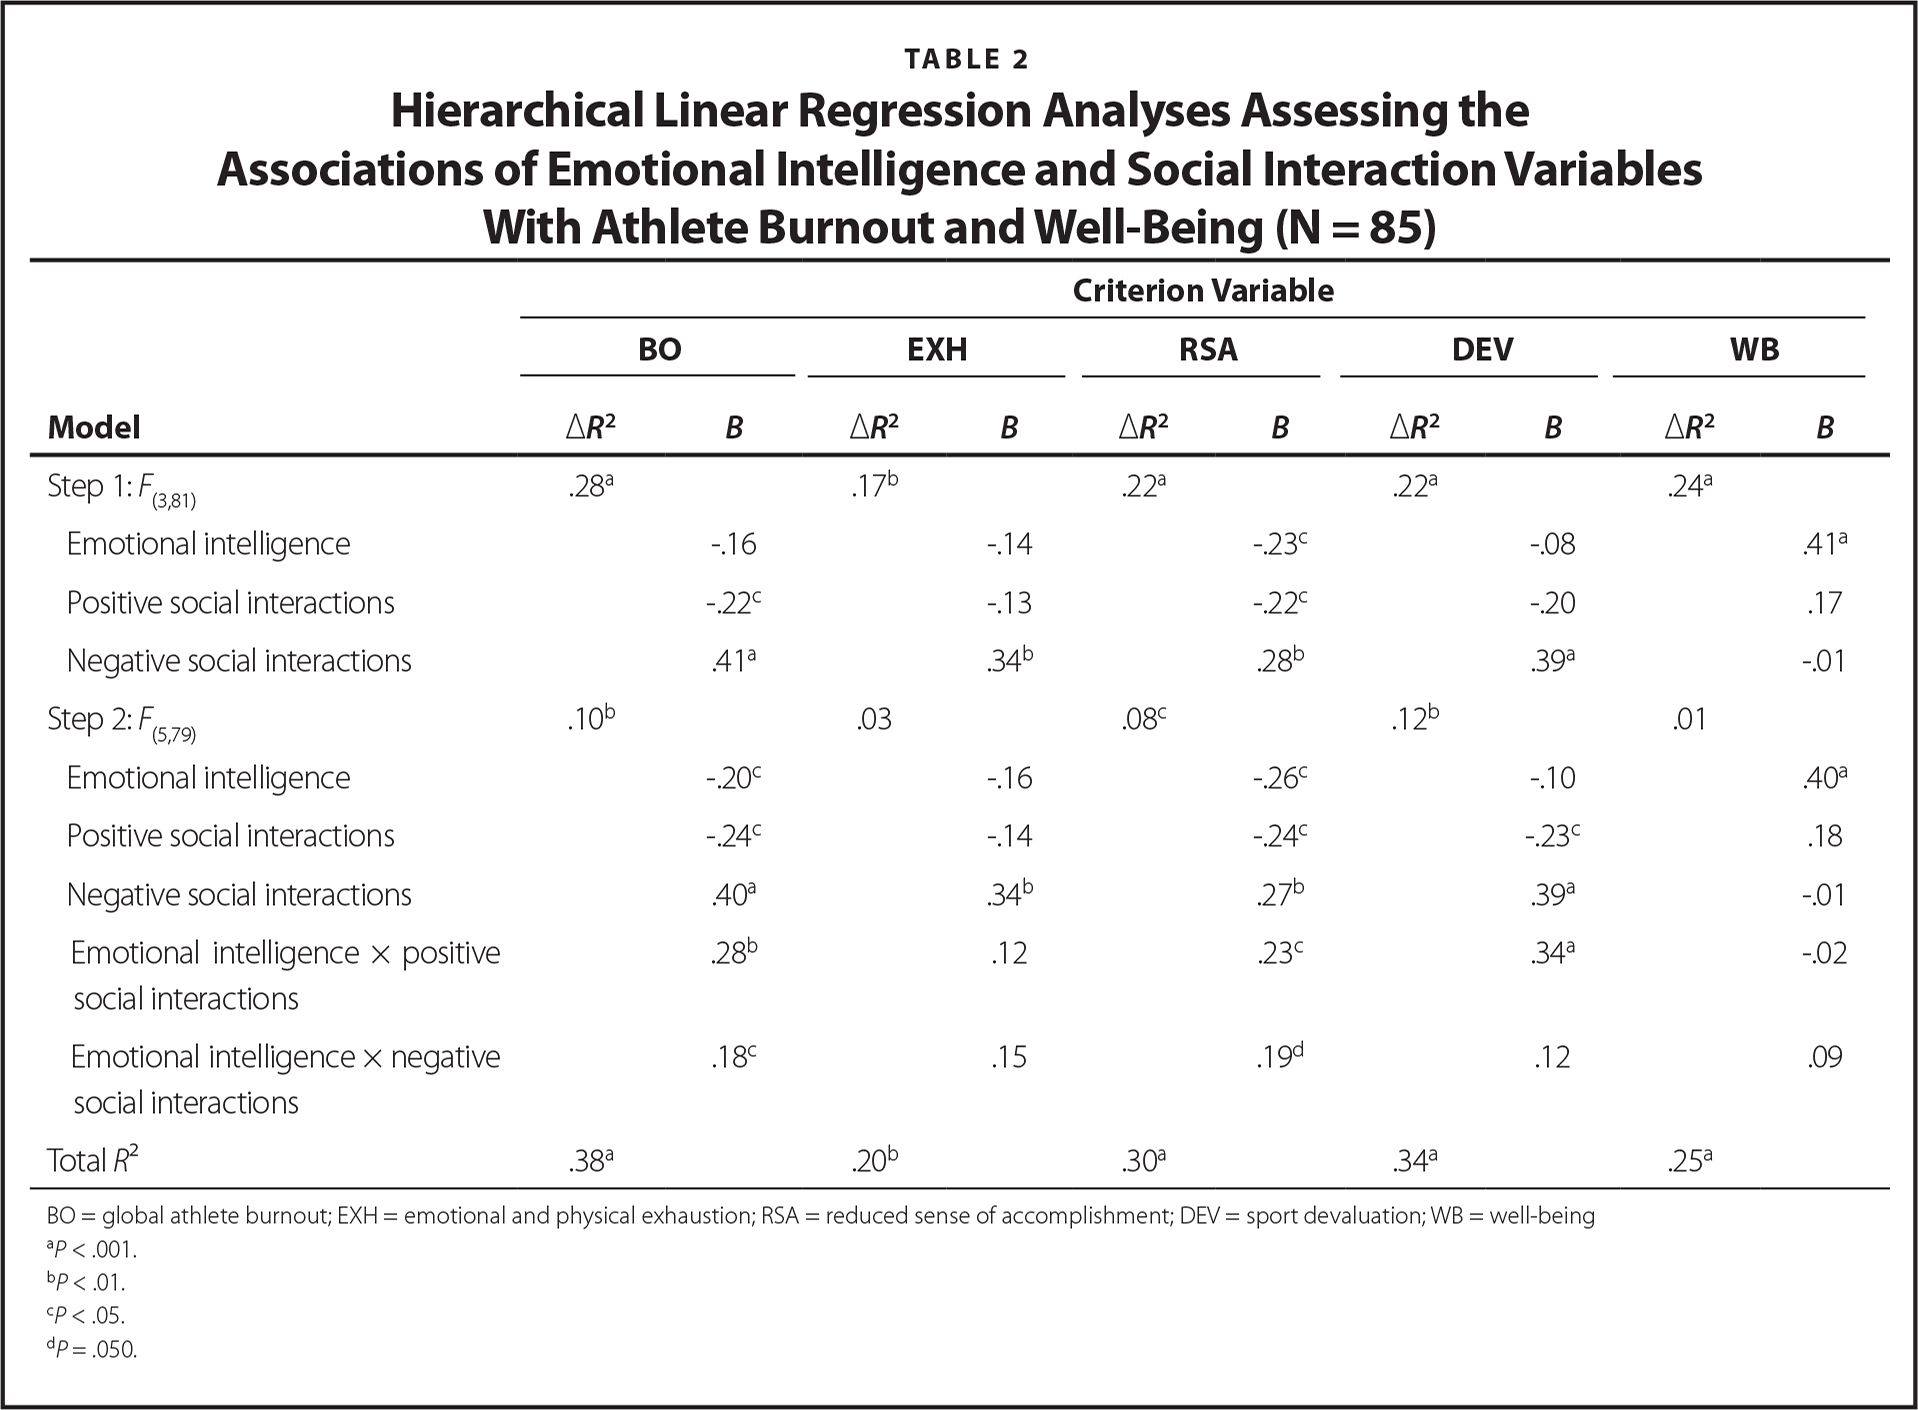 Hierarchical Linear Regression Analyses Assessing the Associations of Emotional Intelligence and Social Interaction Variables With Athlete Burnout and Well-Being (N = 85)